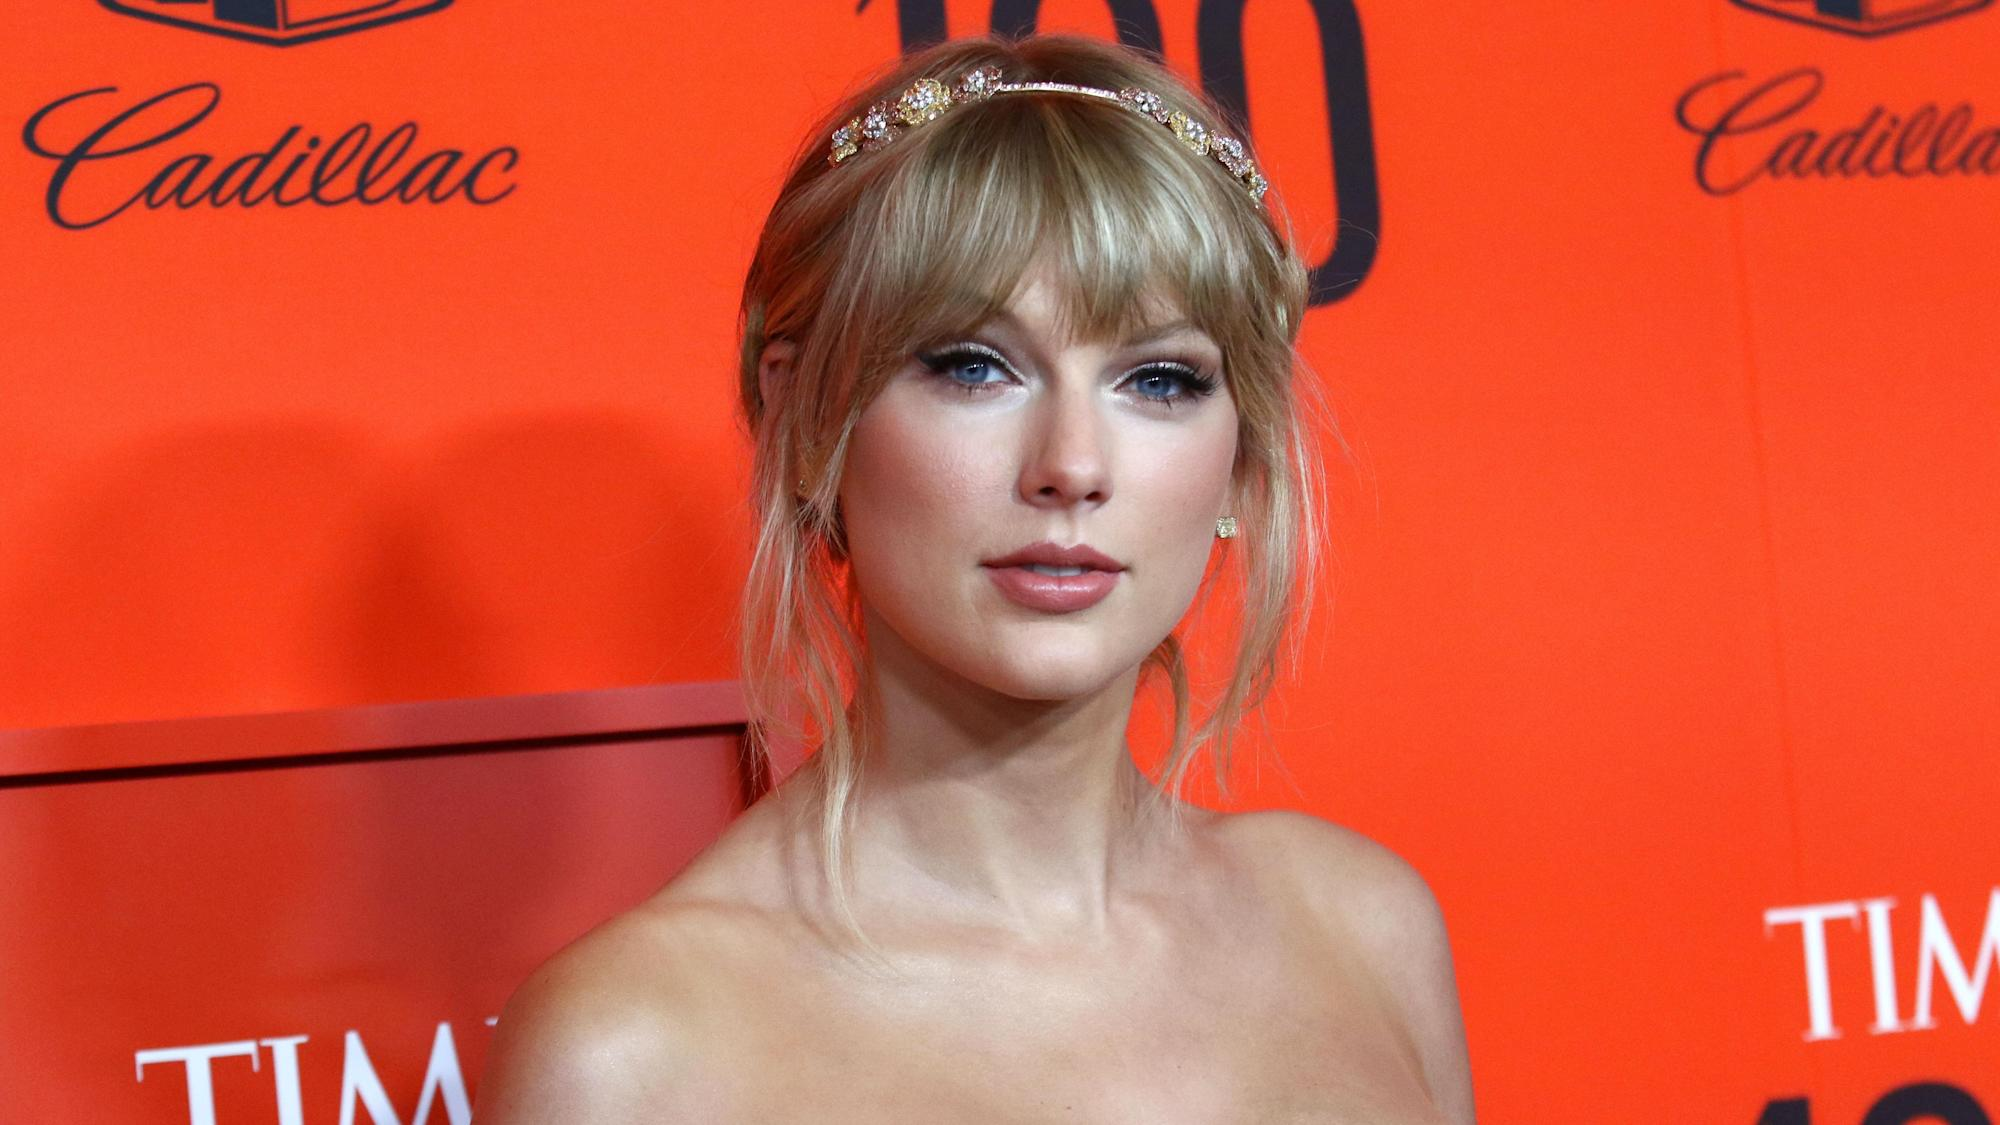 Taylor Swift offers rare glimpse into relationship with Joe Alwyn